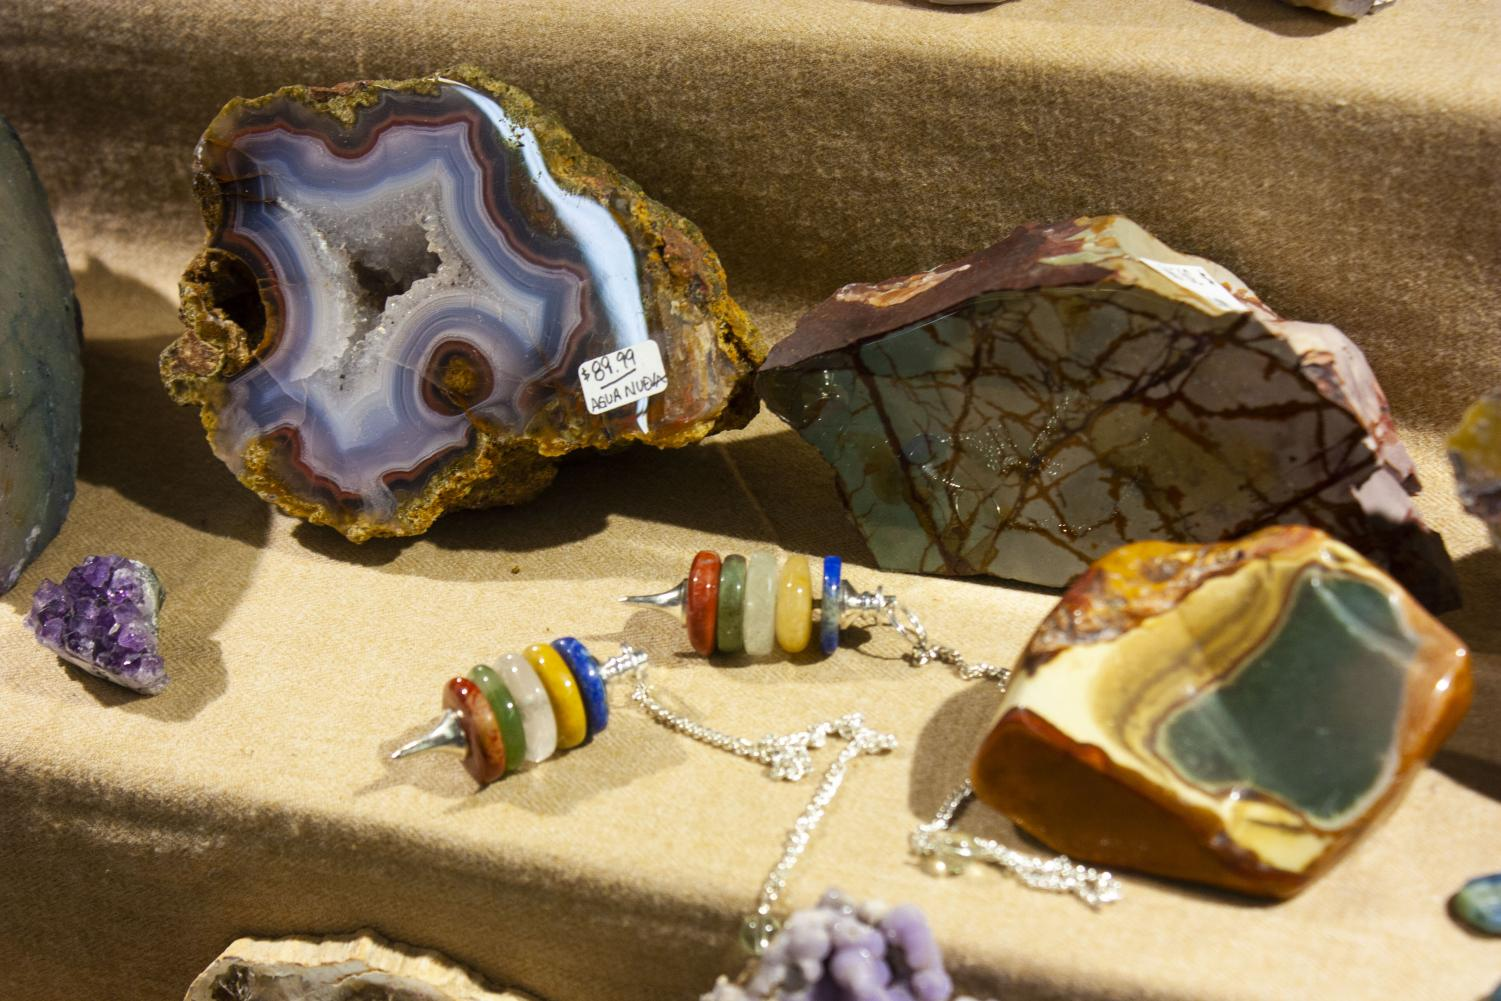 The+Gem+Shop+Inc+brought+many+colorful+geodes+and+agates+to+the+56th+Annual+Chippewa+Valley+Gem+and+Mineral+Society+show+and+sale.+